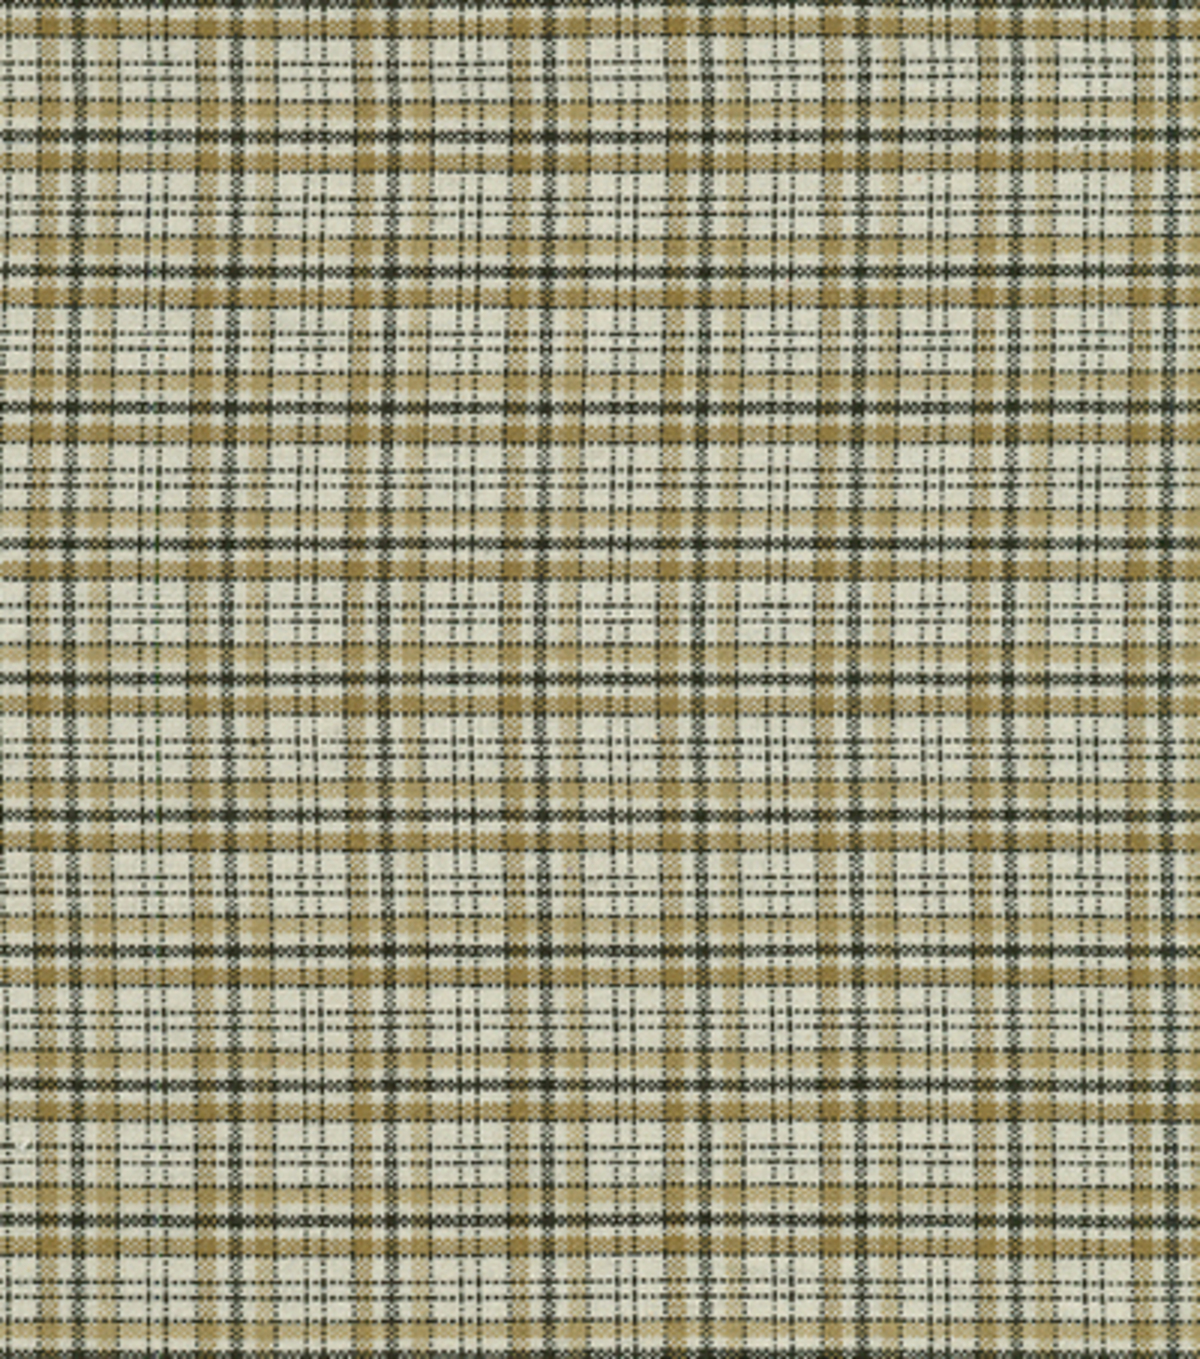 Home Decor 8\u0022x8\u0022 Fabric Swatch-Covington Beckford